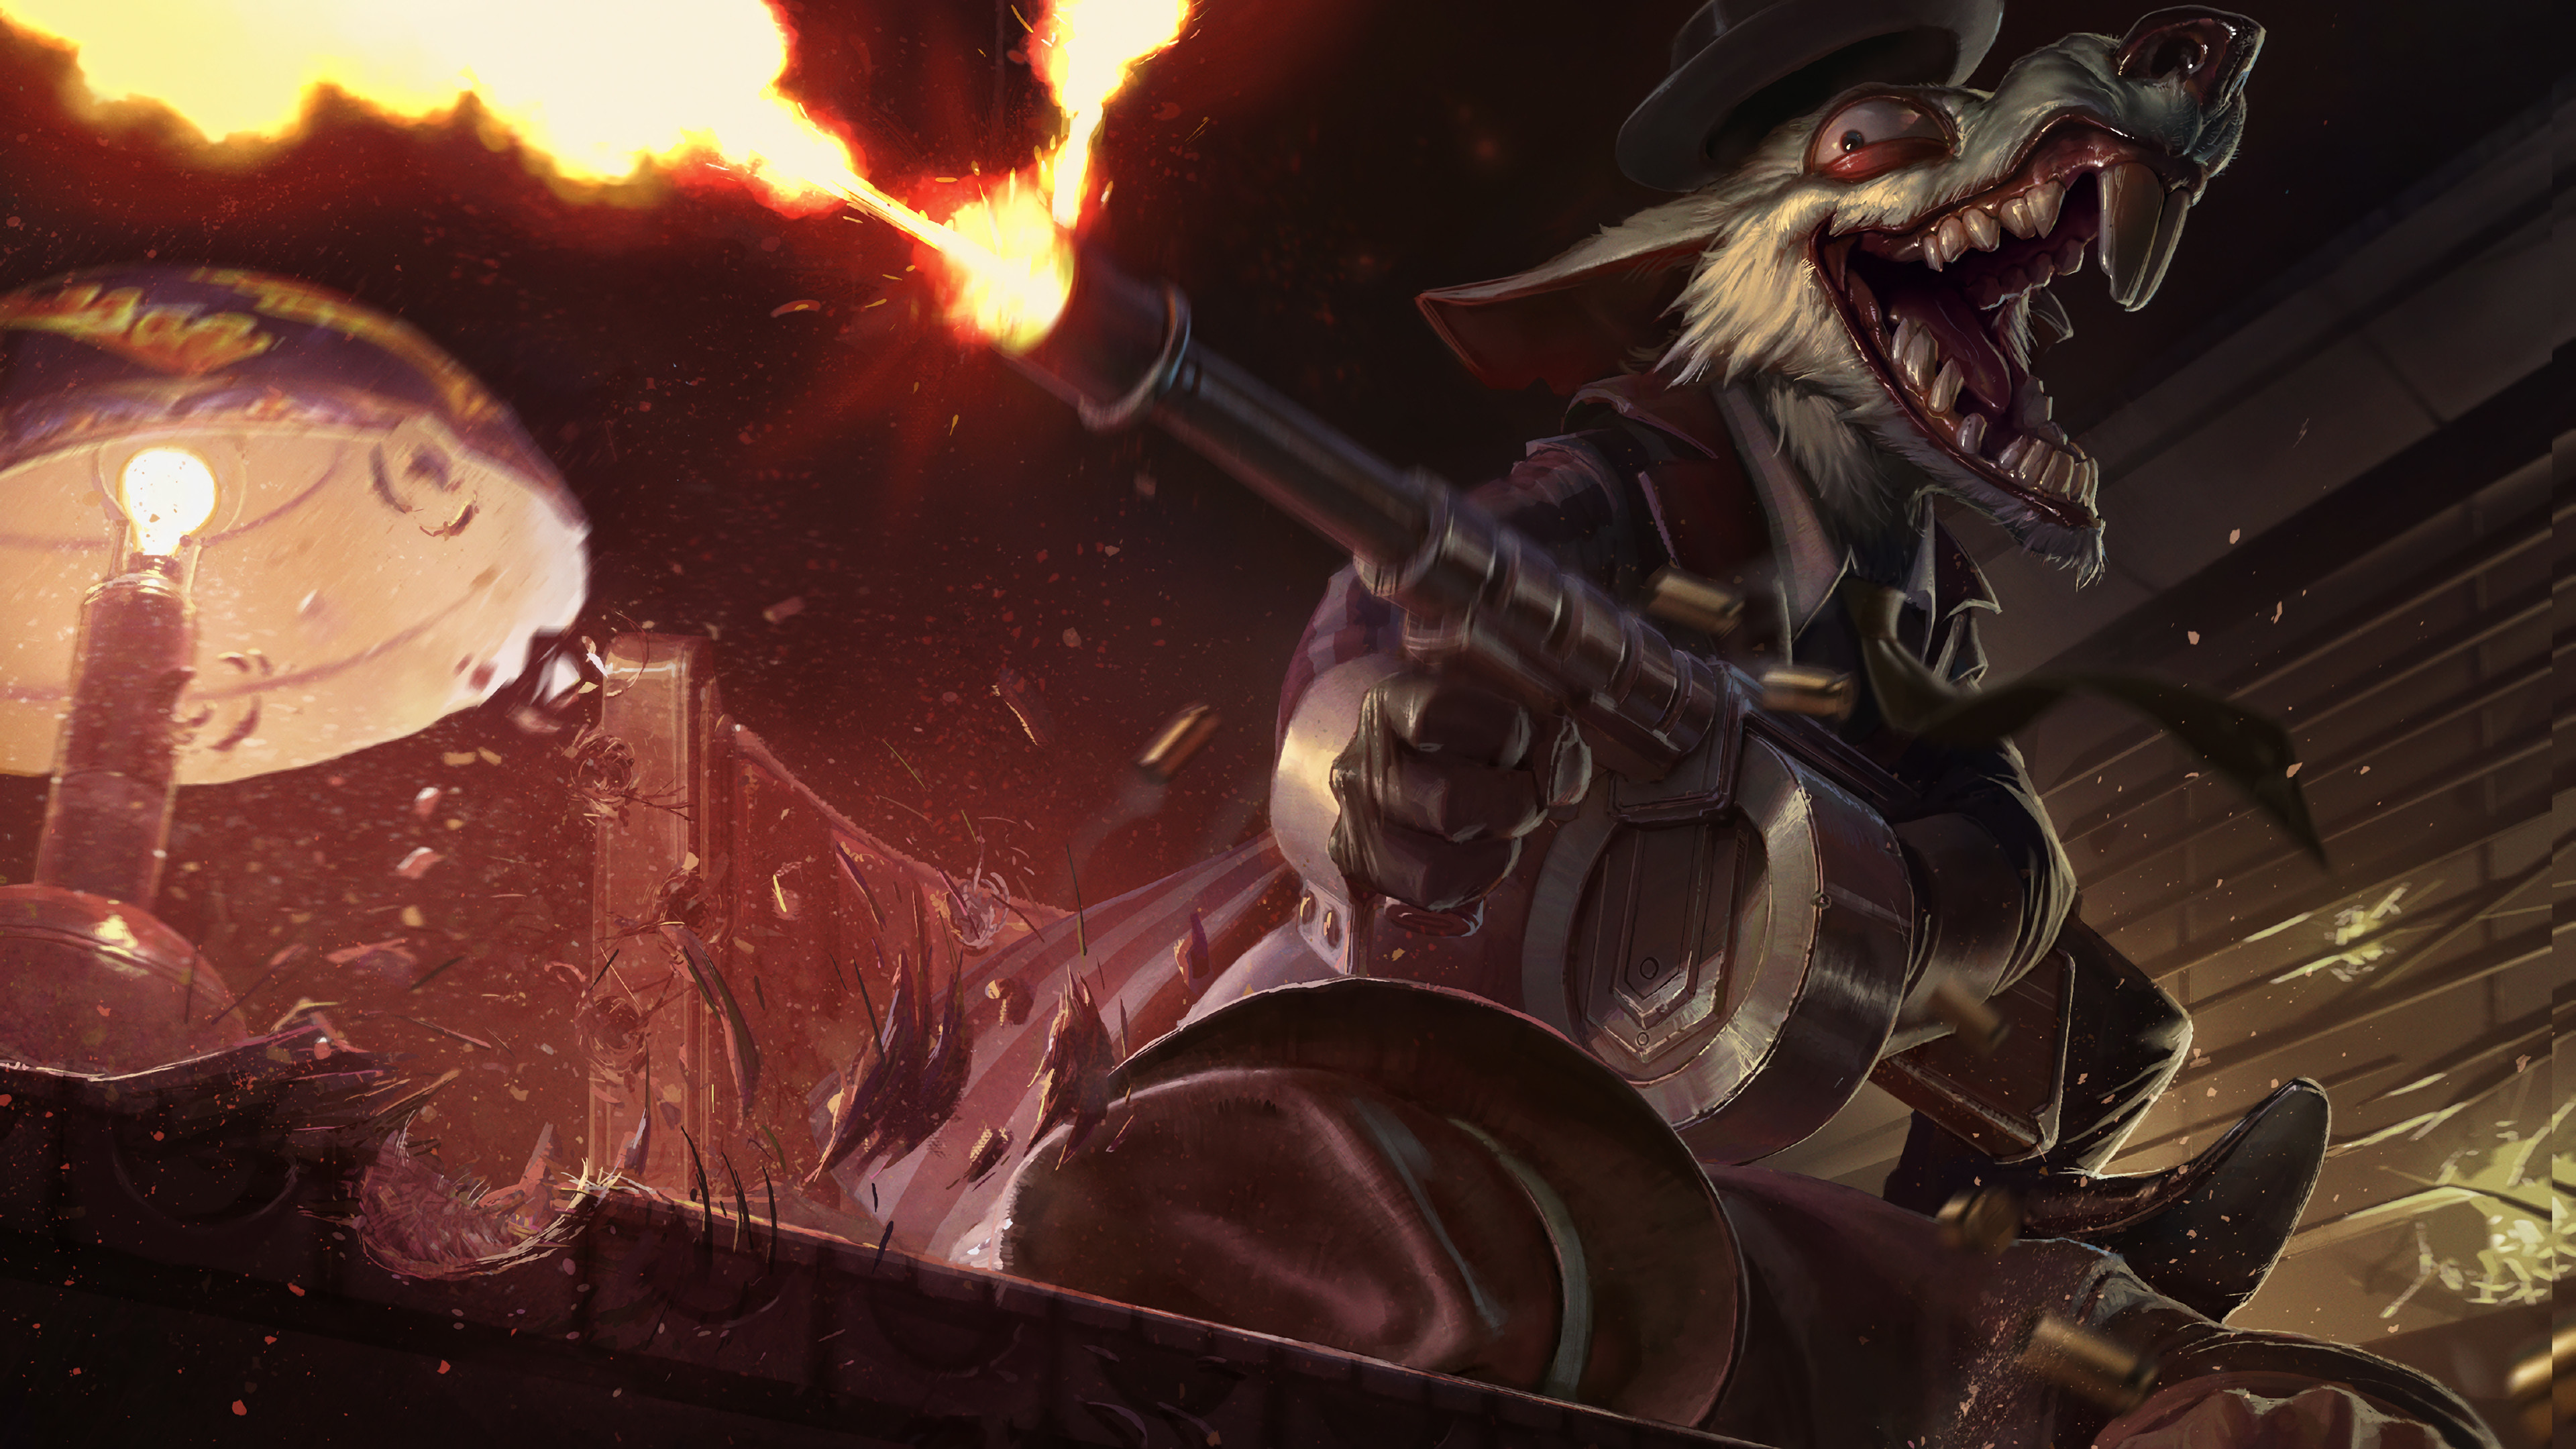 Twitch League Of Legends Wallpapers Wallpapertag